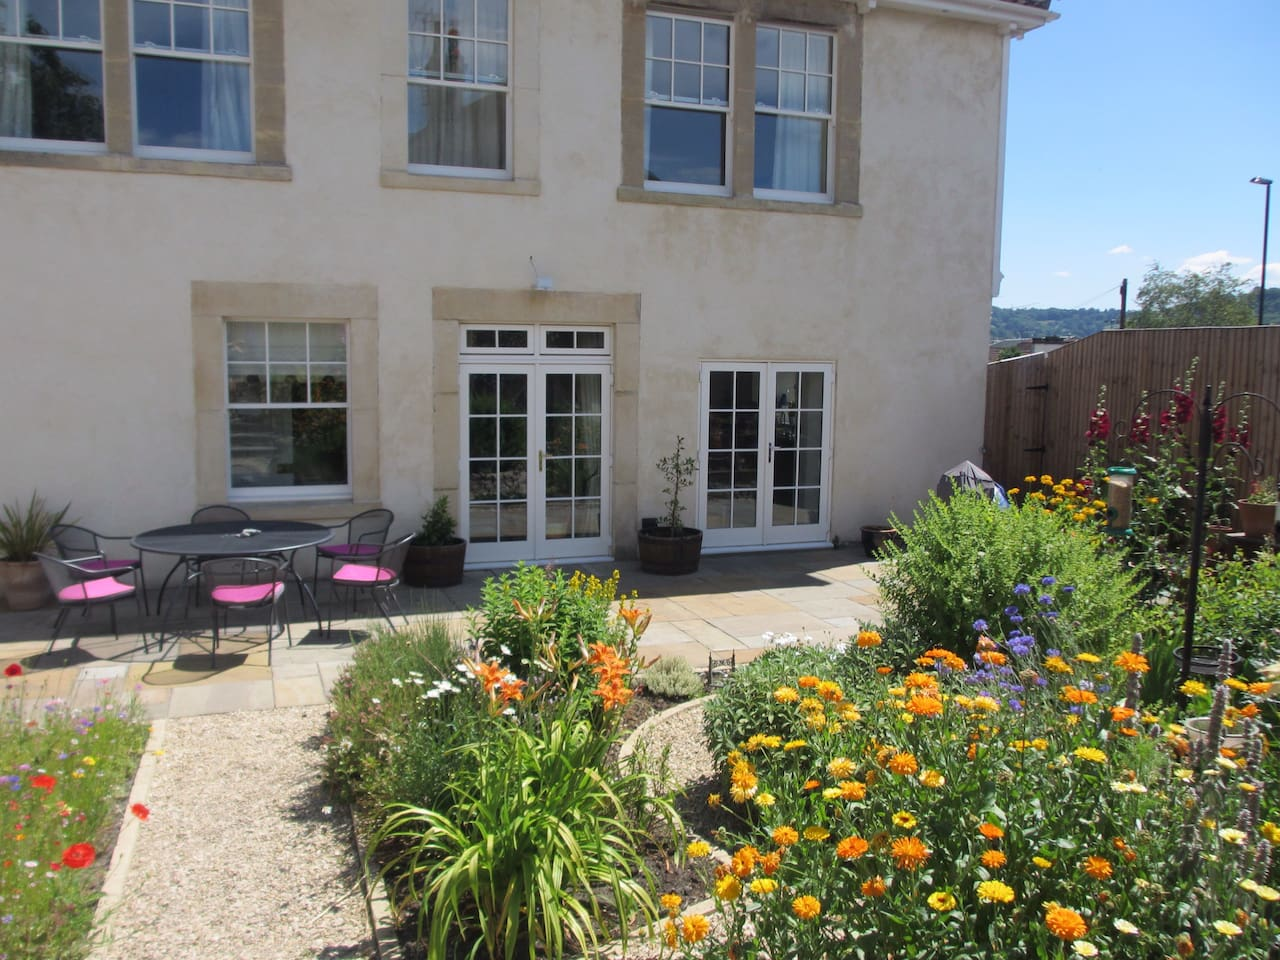 The house has a large, private garden at the back